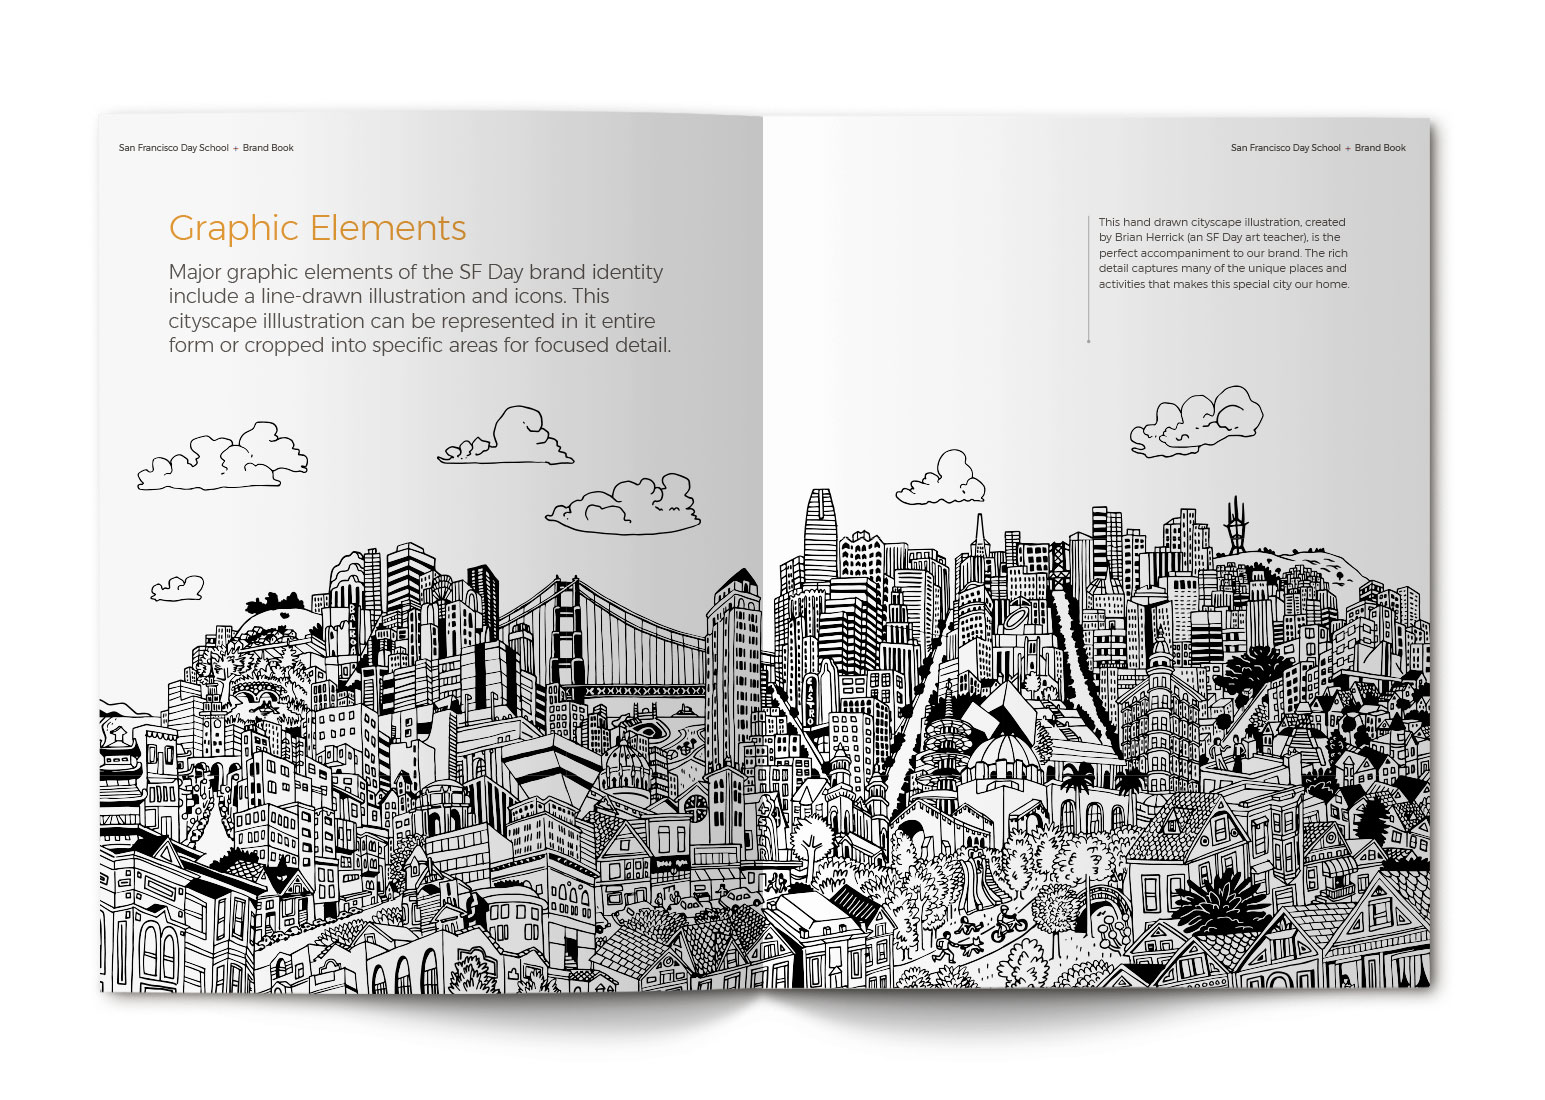 San Francisco Day School Brand Book Spreads - Graphic Elements